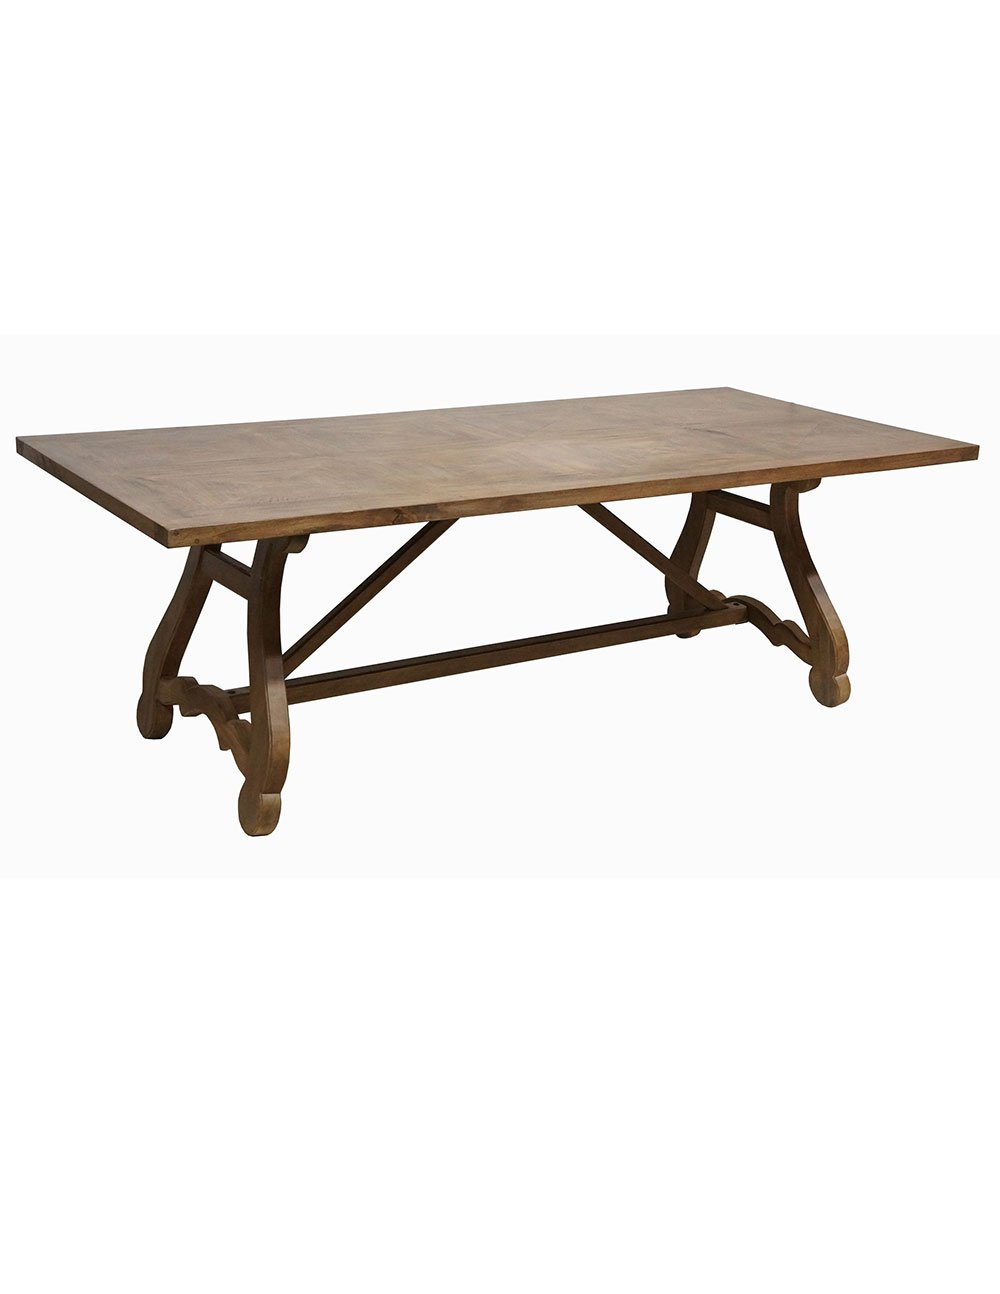 Isabella Dining Table 220X100Cm - decorstore